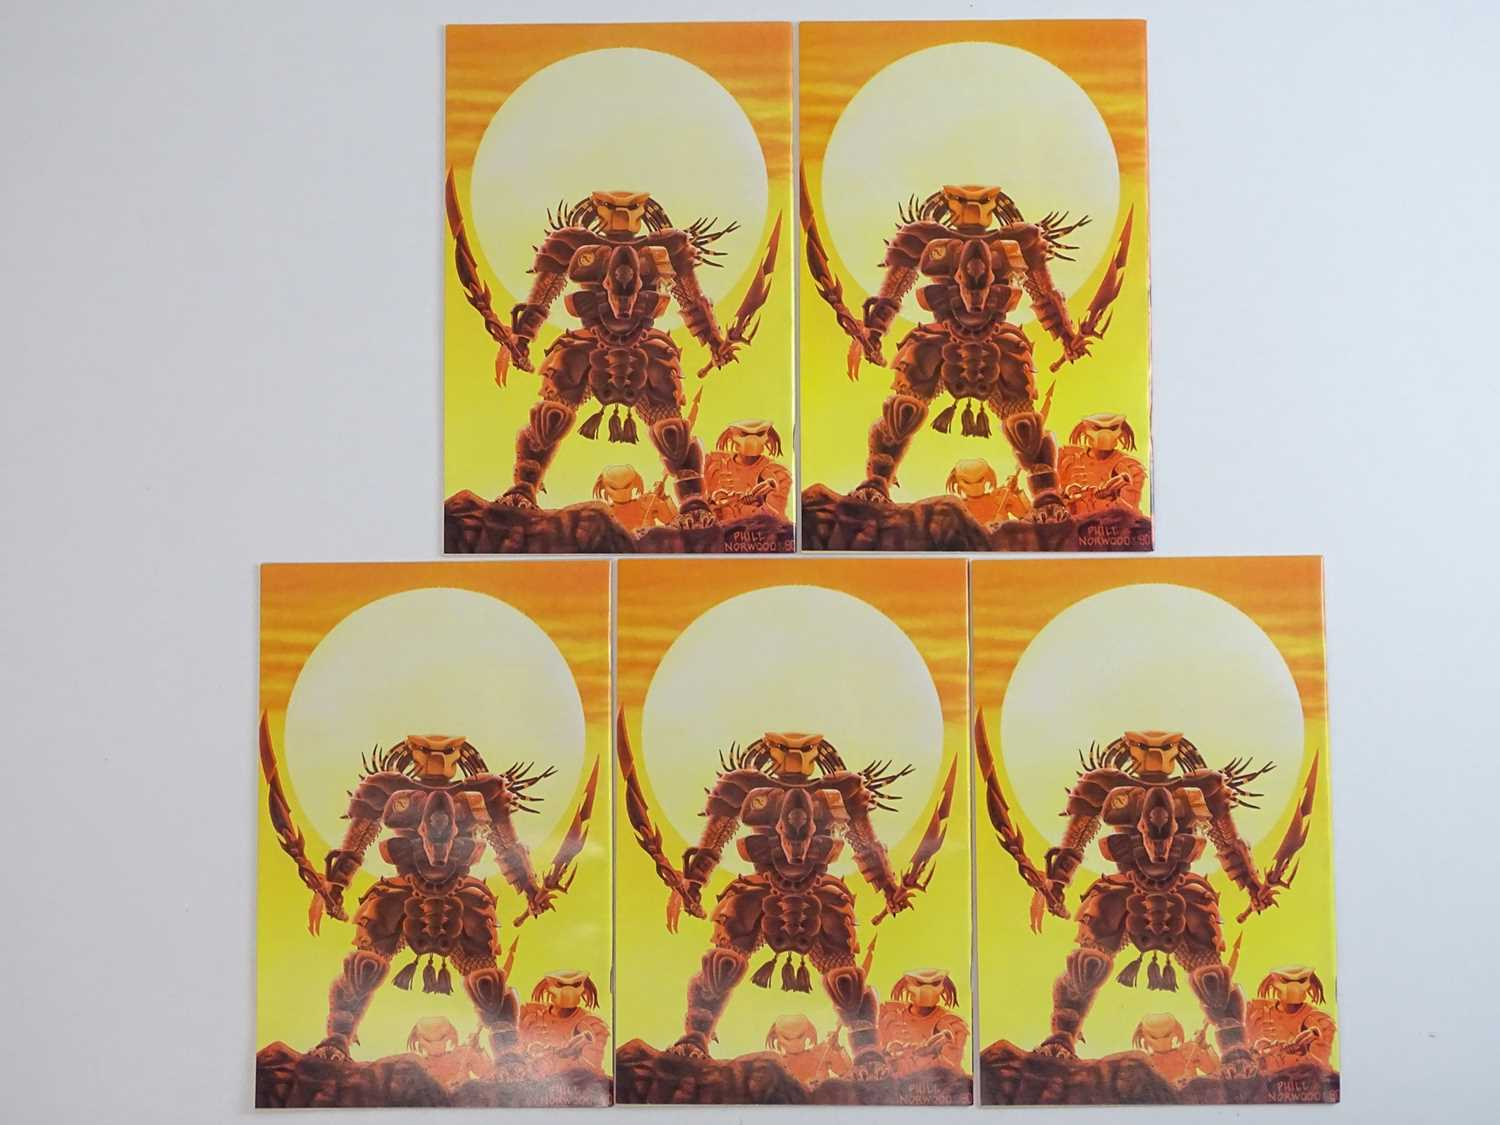 ALIENS VS PREDATOR #1 - (5 in Lot) - (1990 - DARK HORSE) - First Printing - Five (5) #1 issues for - Image 2 of 2